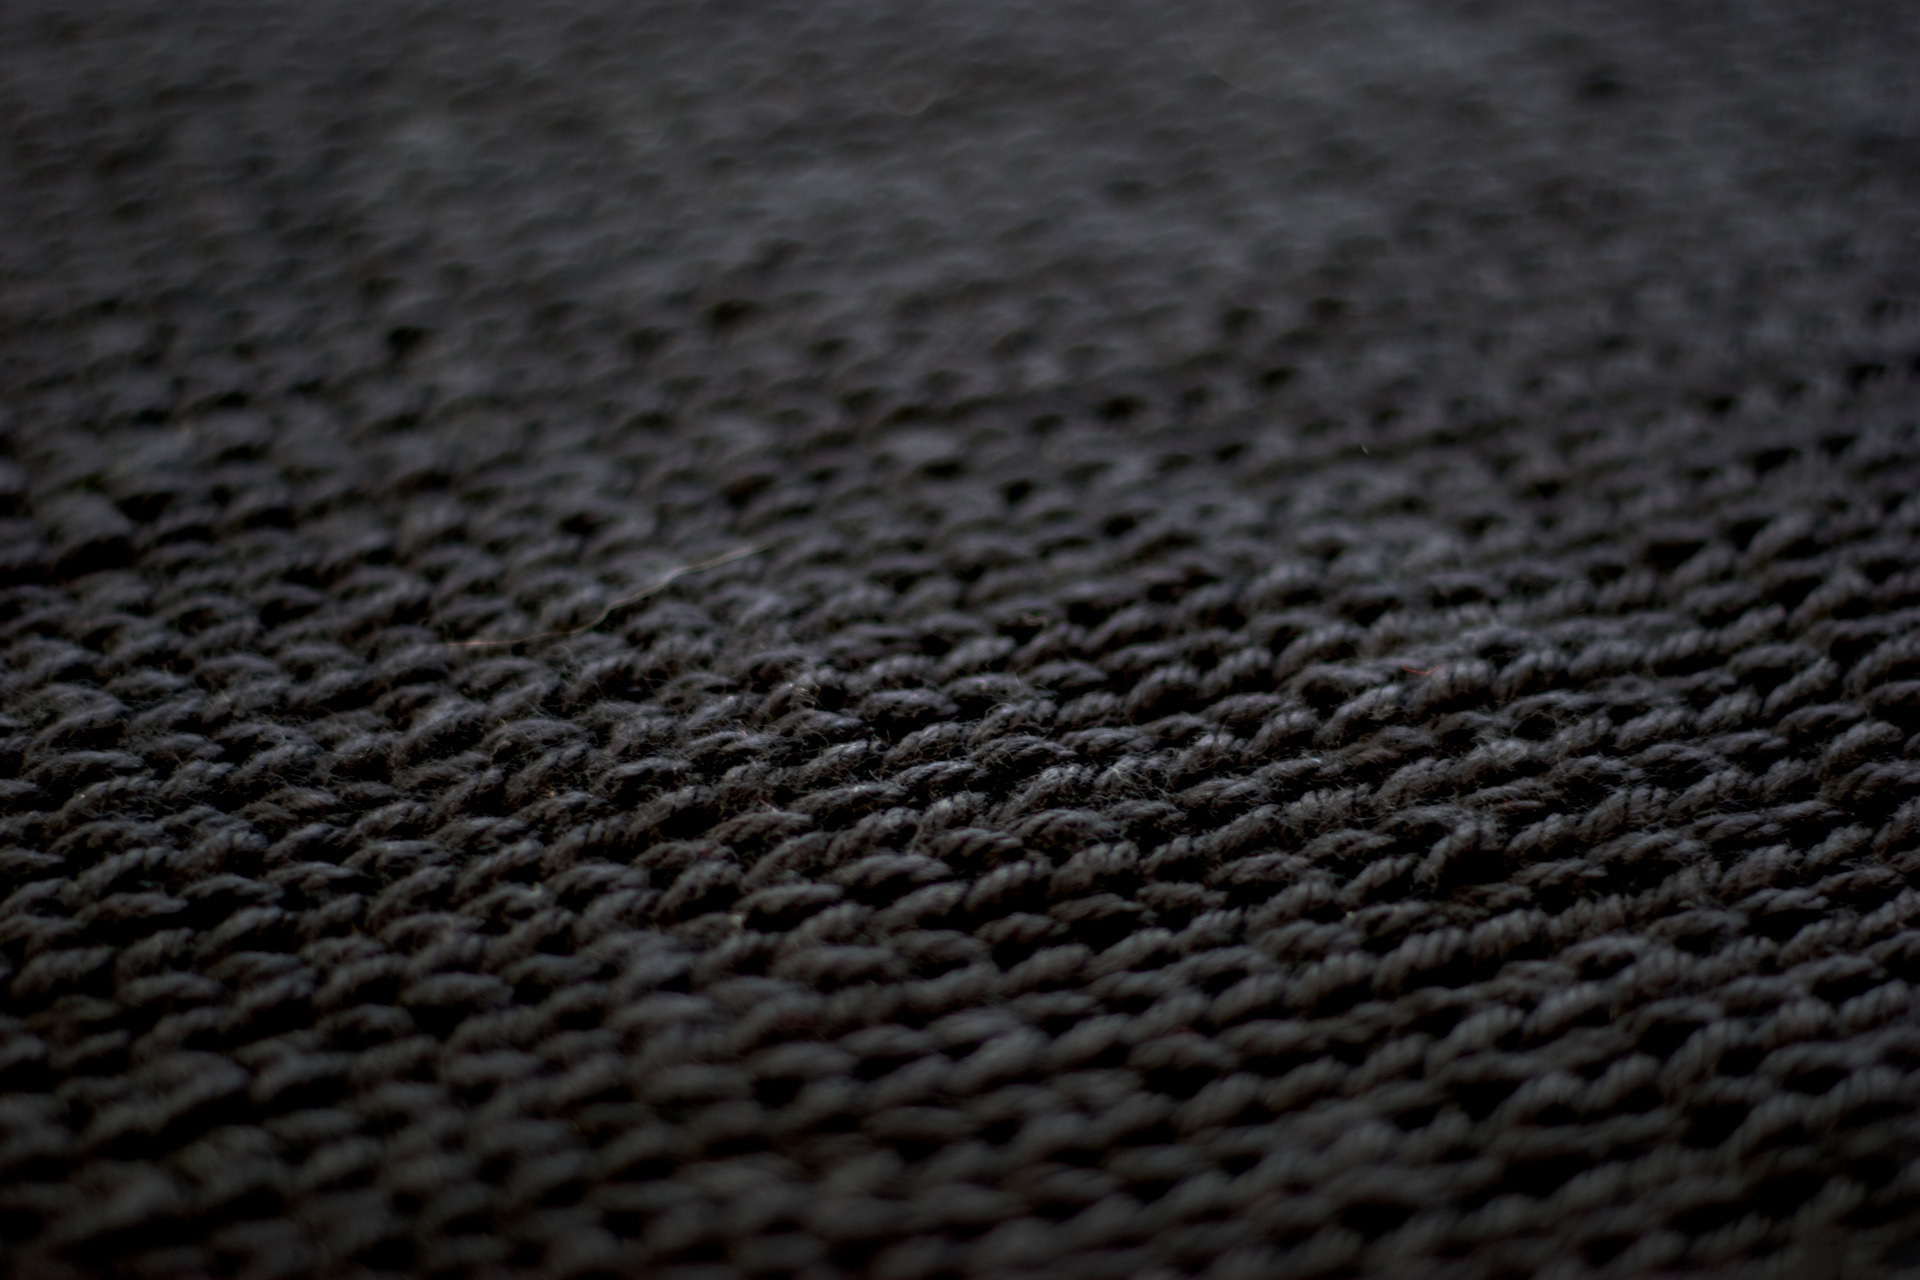 black fabric cloth download photo background texture black knitted 1920x1280